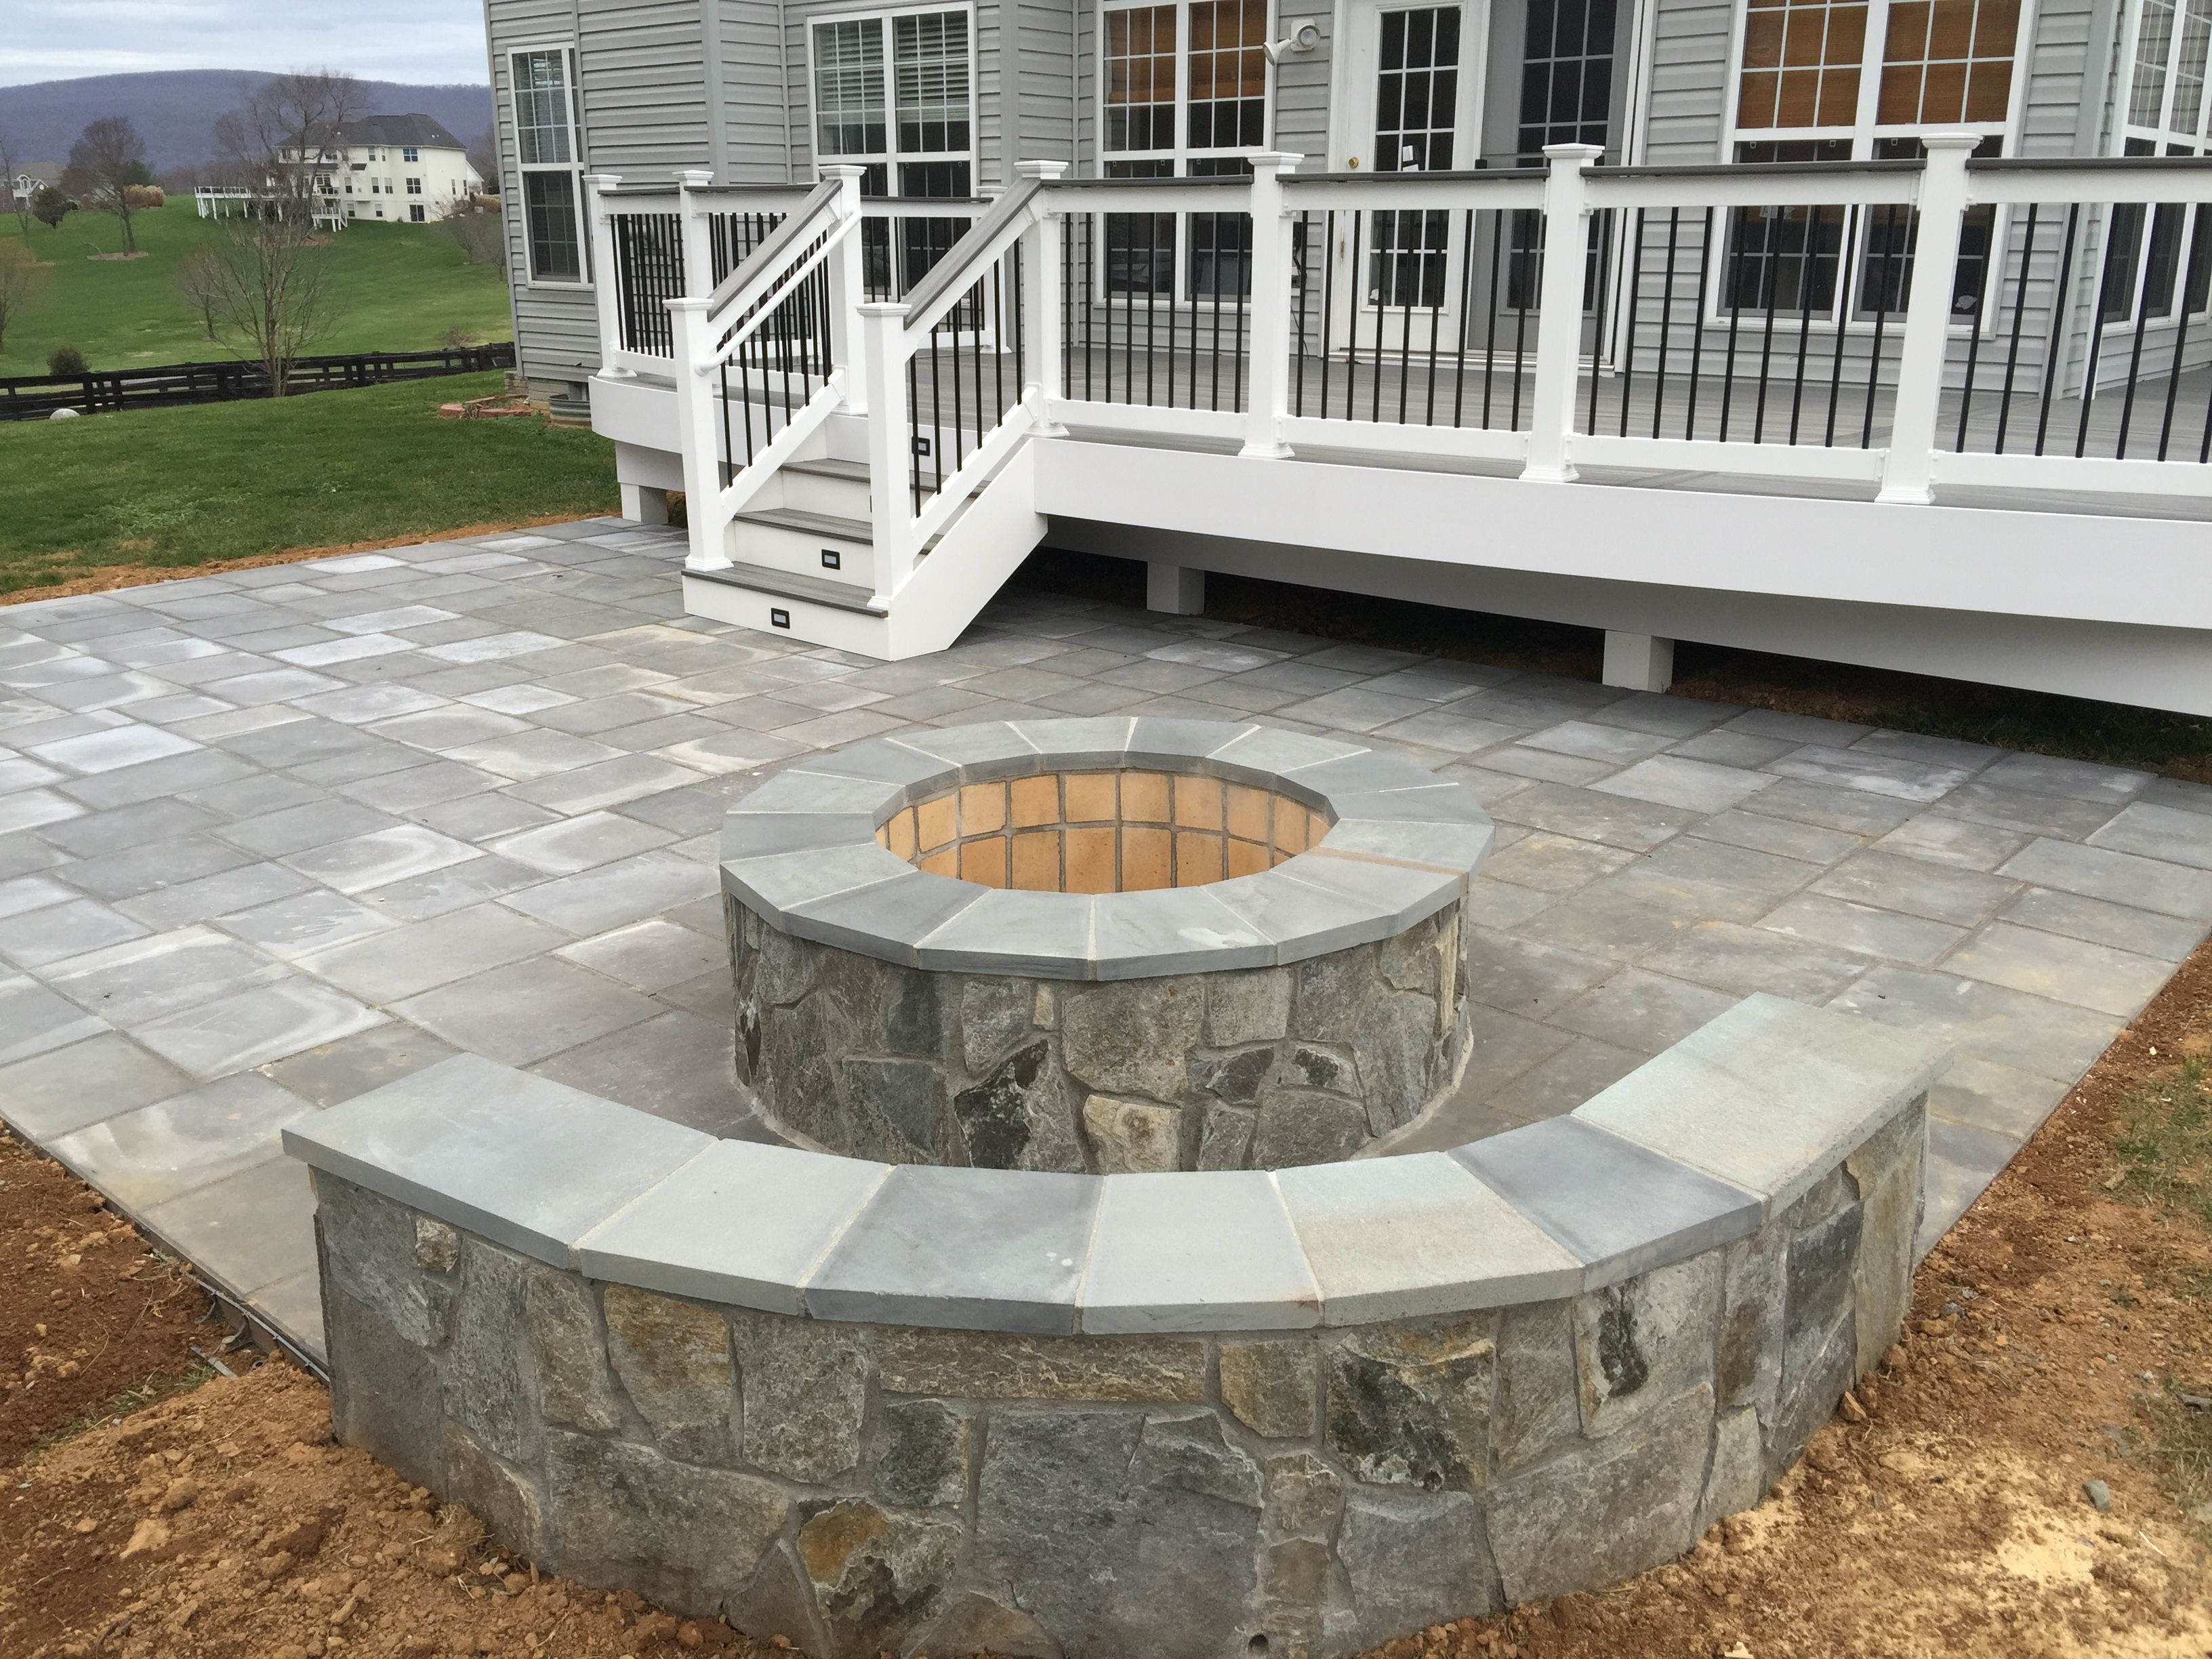 A Beautiful Paver Patio With Stone Seating Walls And A Fire with dimensions 3264 X 2448